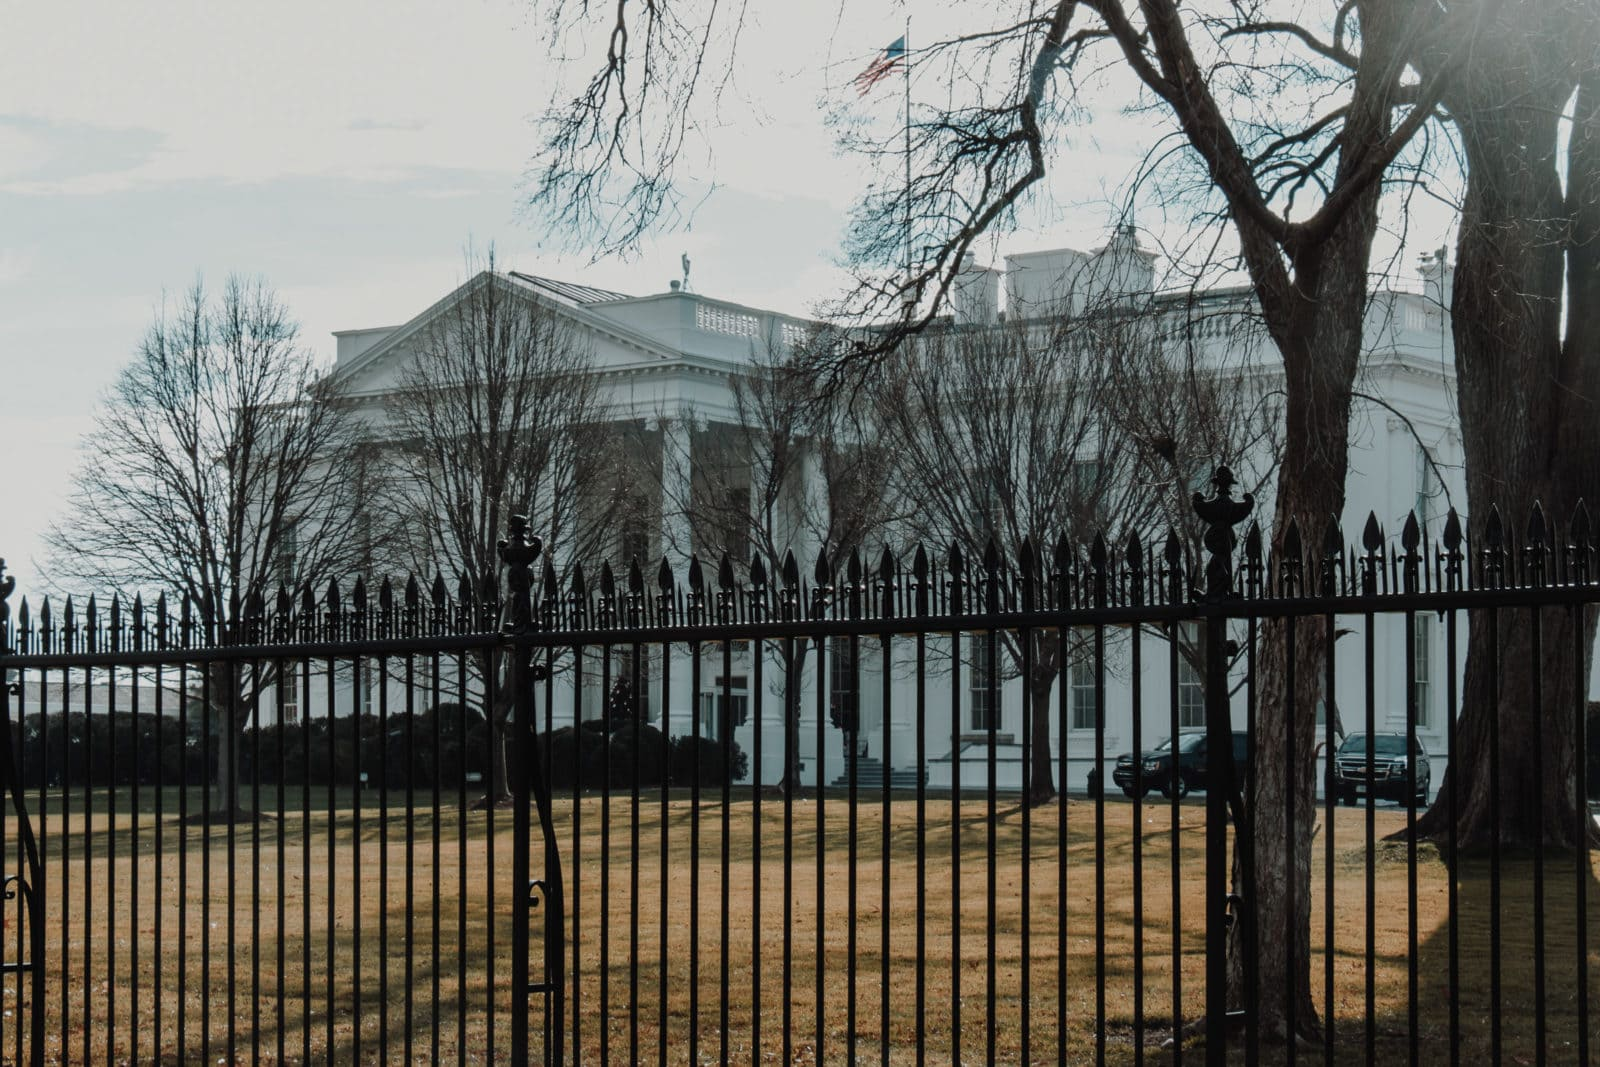 Best Things to do in Washington DC The White House